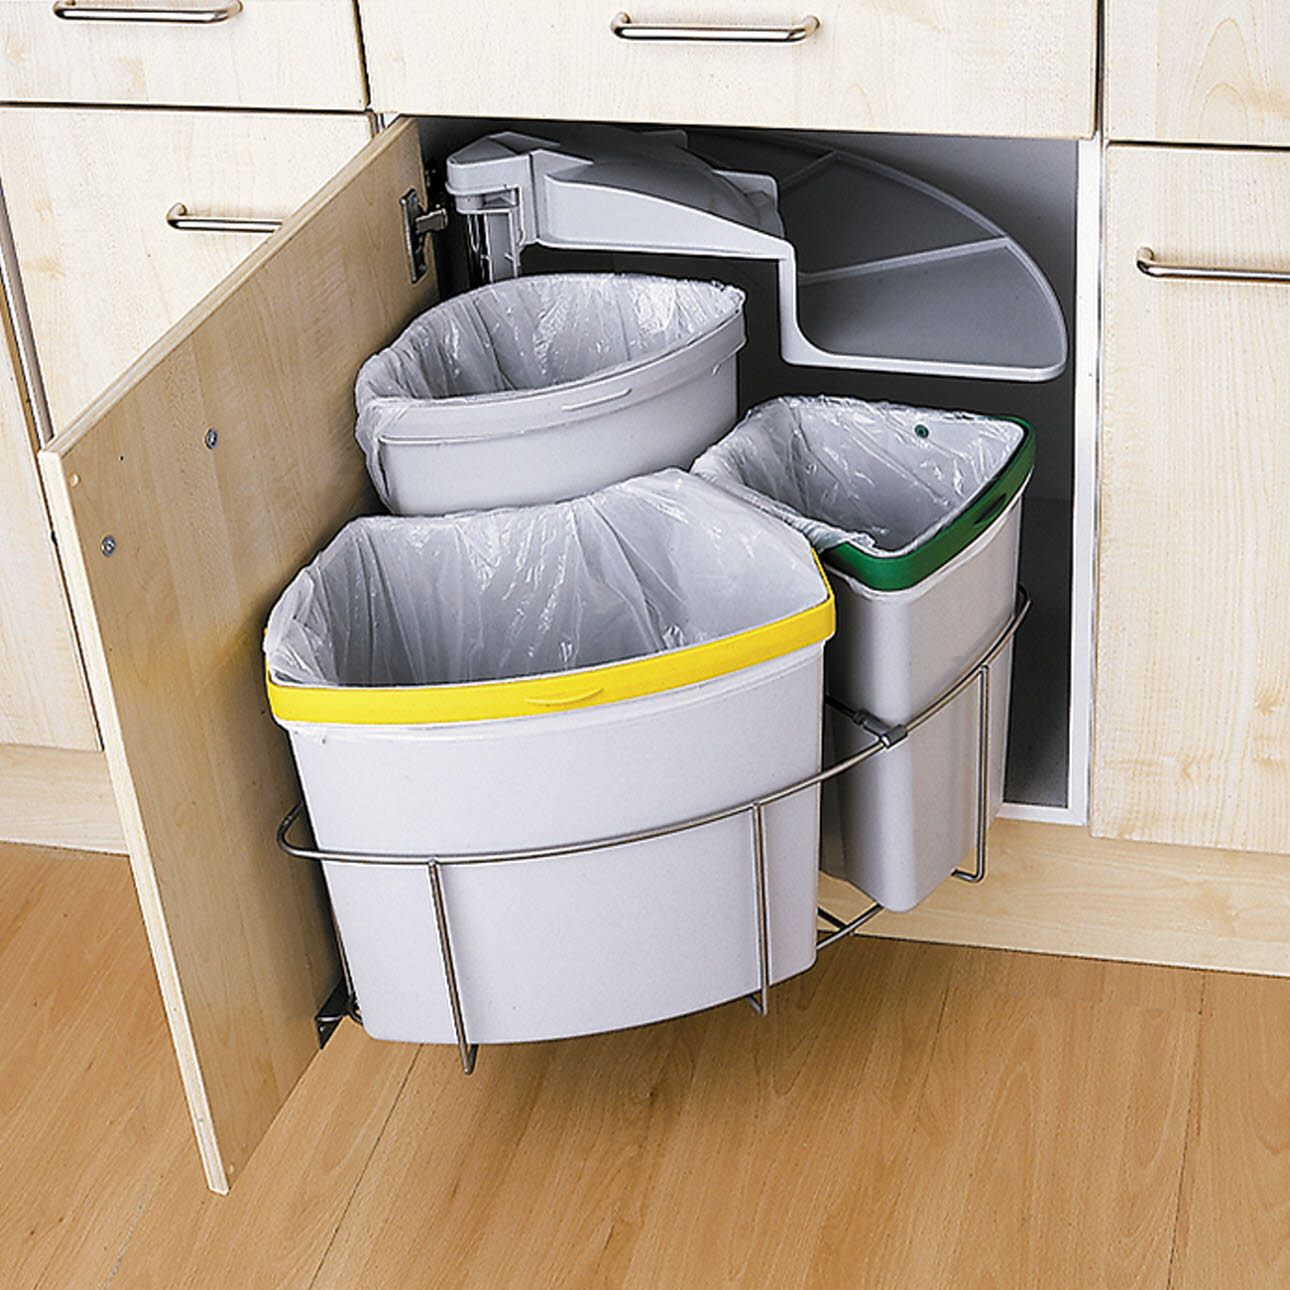 Image result for what to recycle in kitchen | Recycle | Pinterest ...